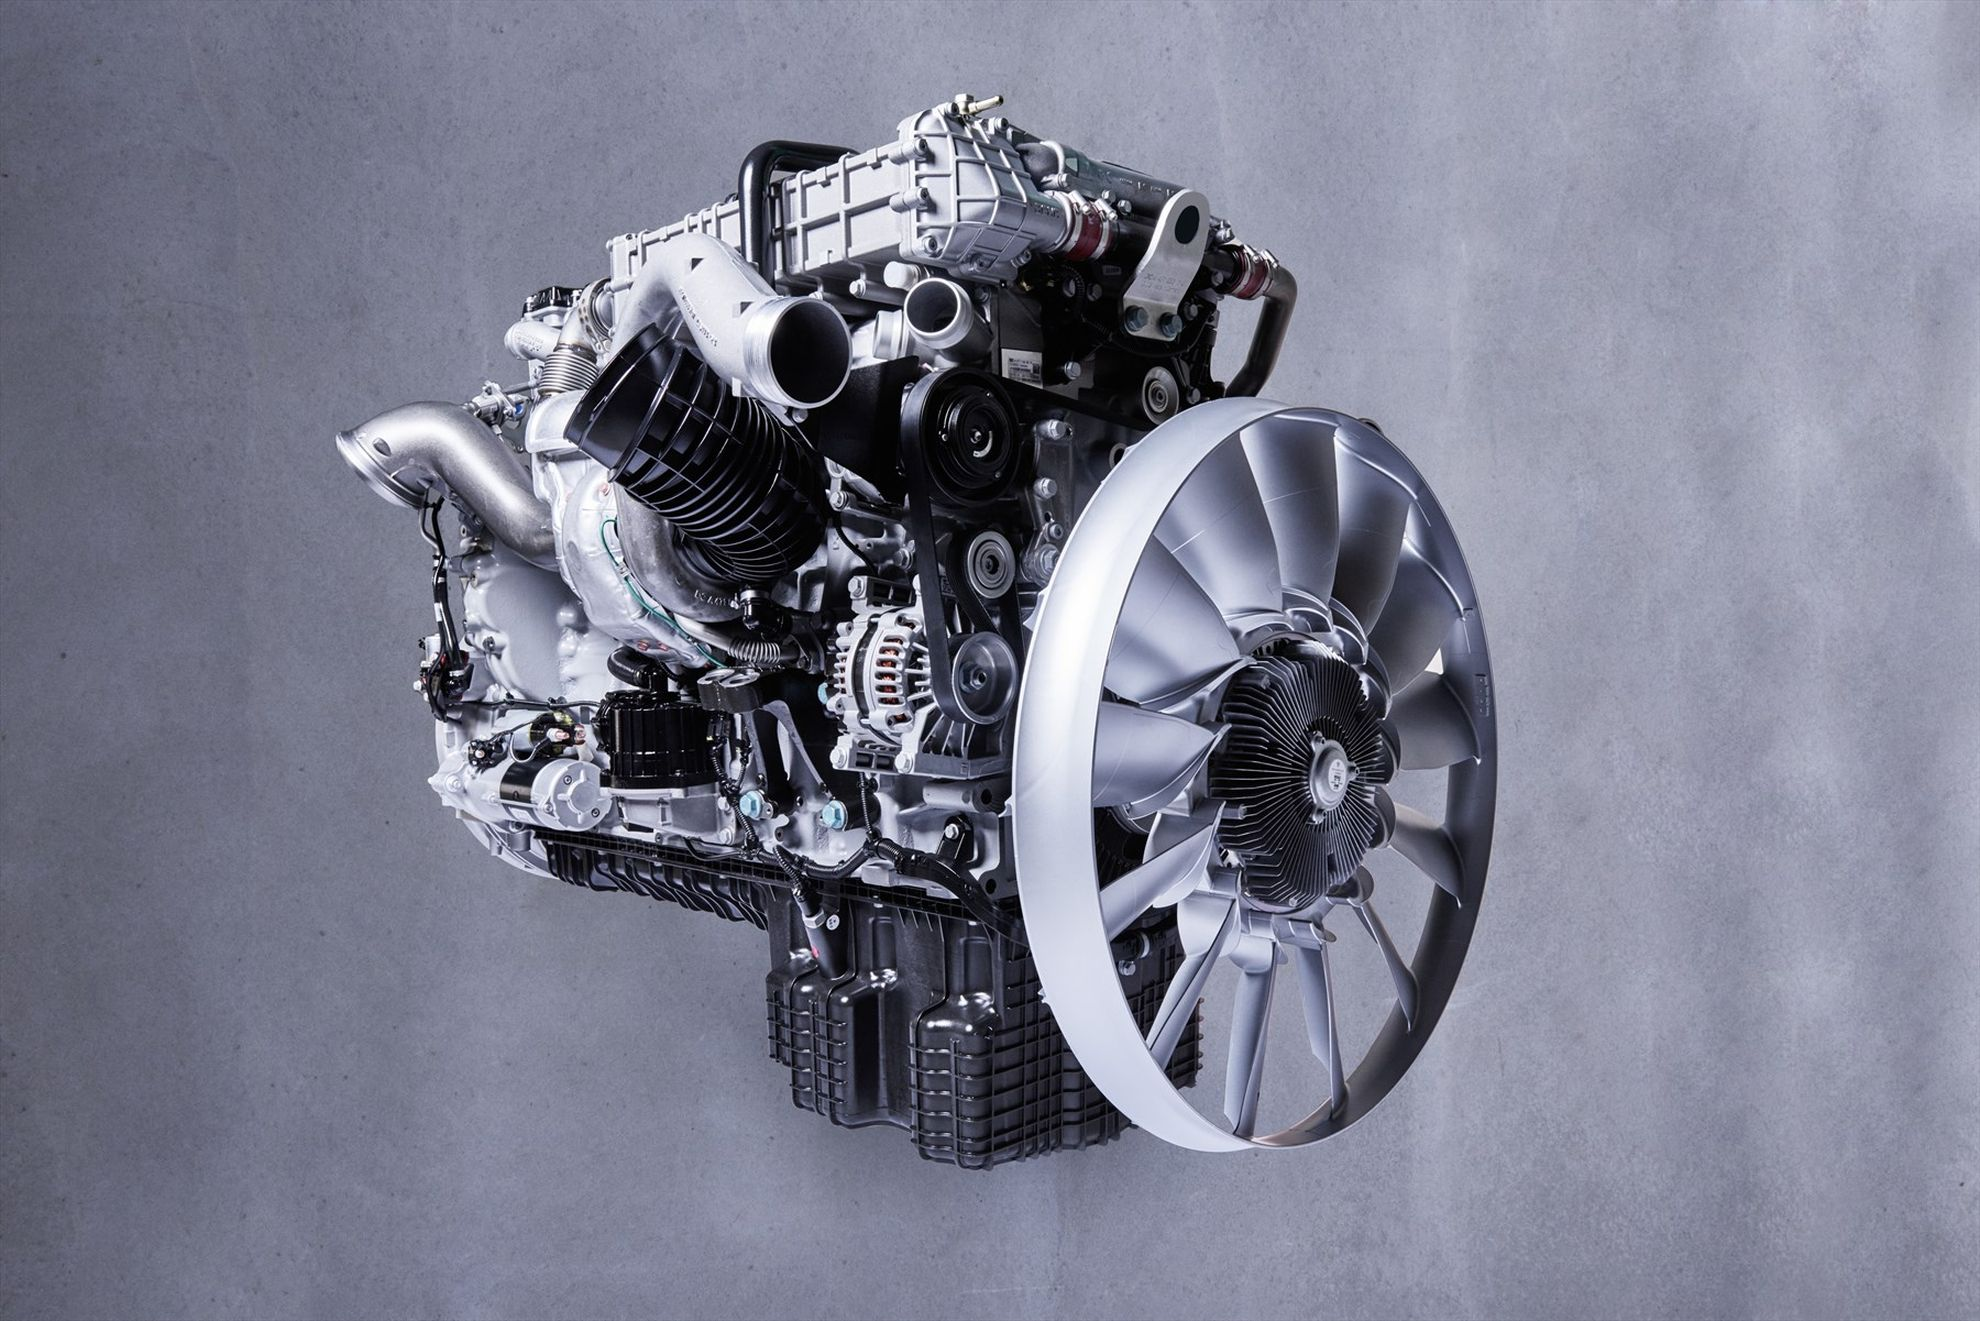 Mercedes-Benz-OM-471-engine